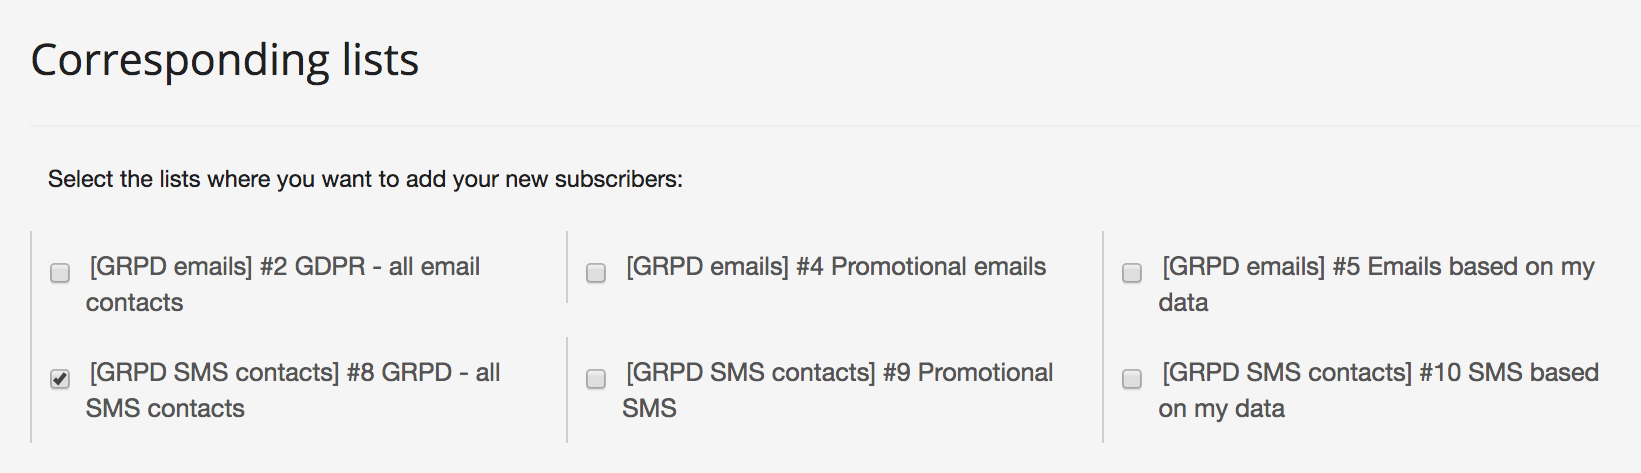 grpd-SMS-forms_EN-6.png